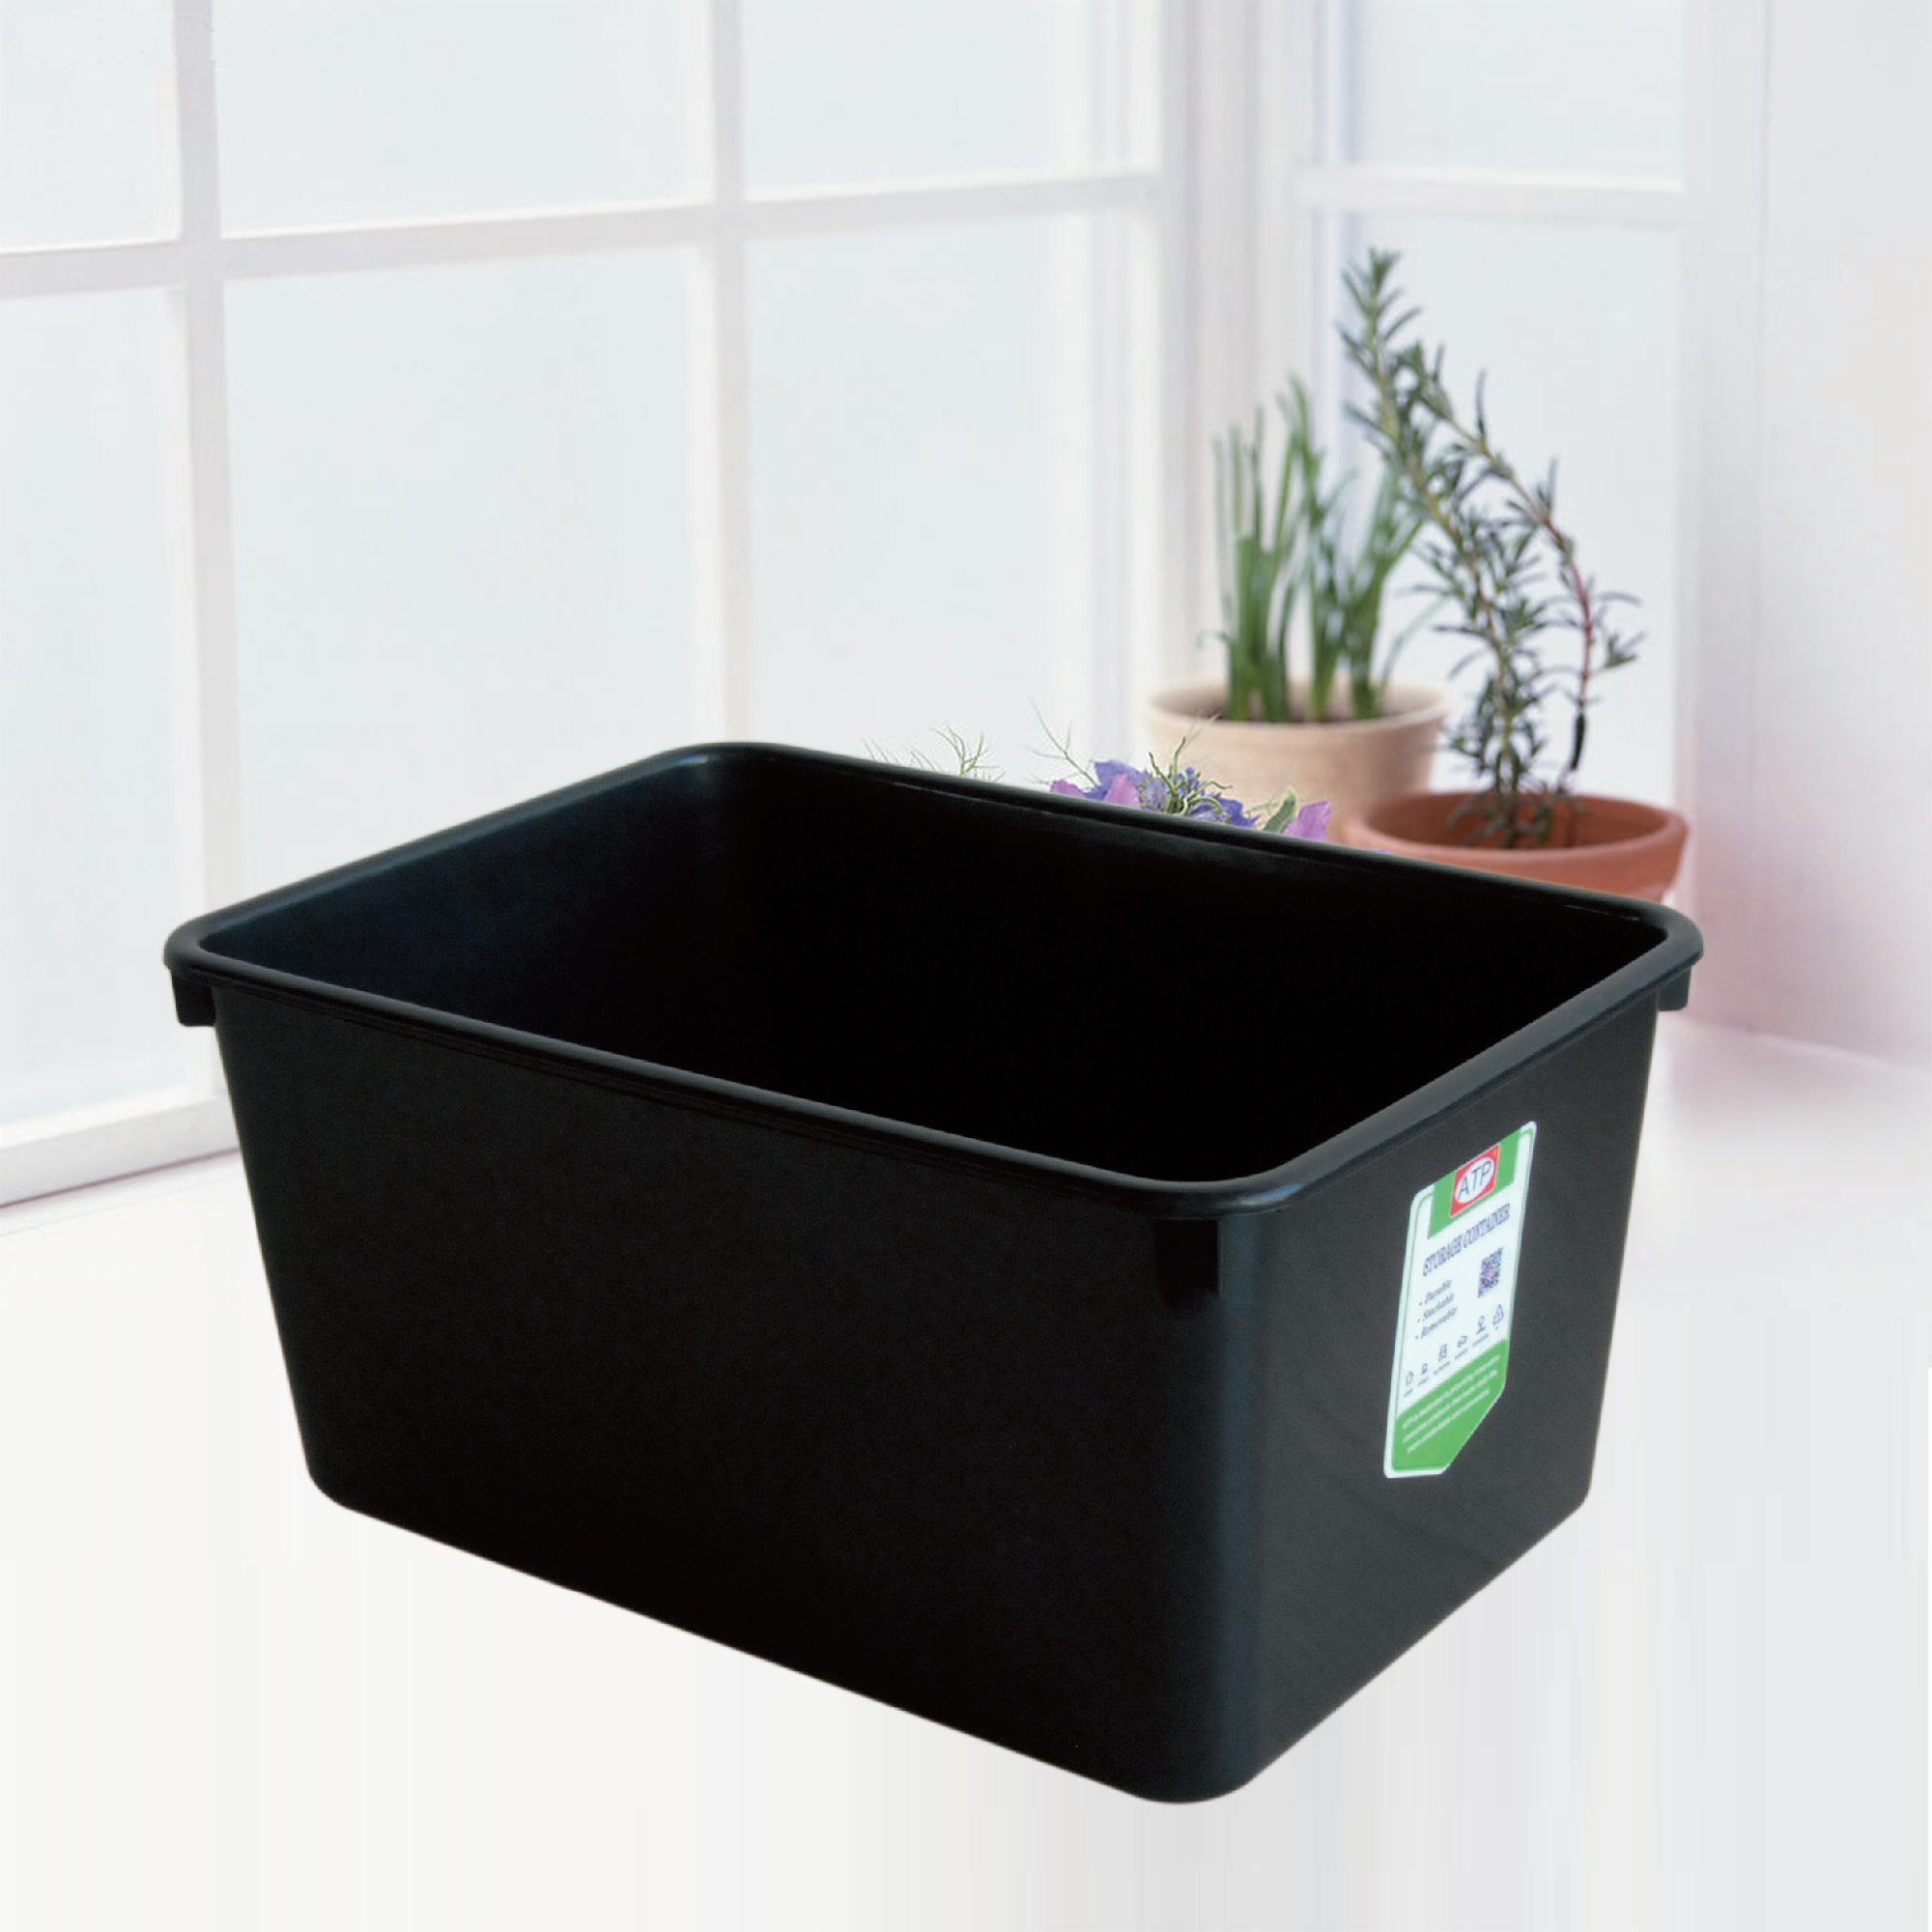 Houseware heavy duty 20L plastic storage box with No lid